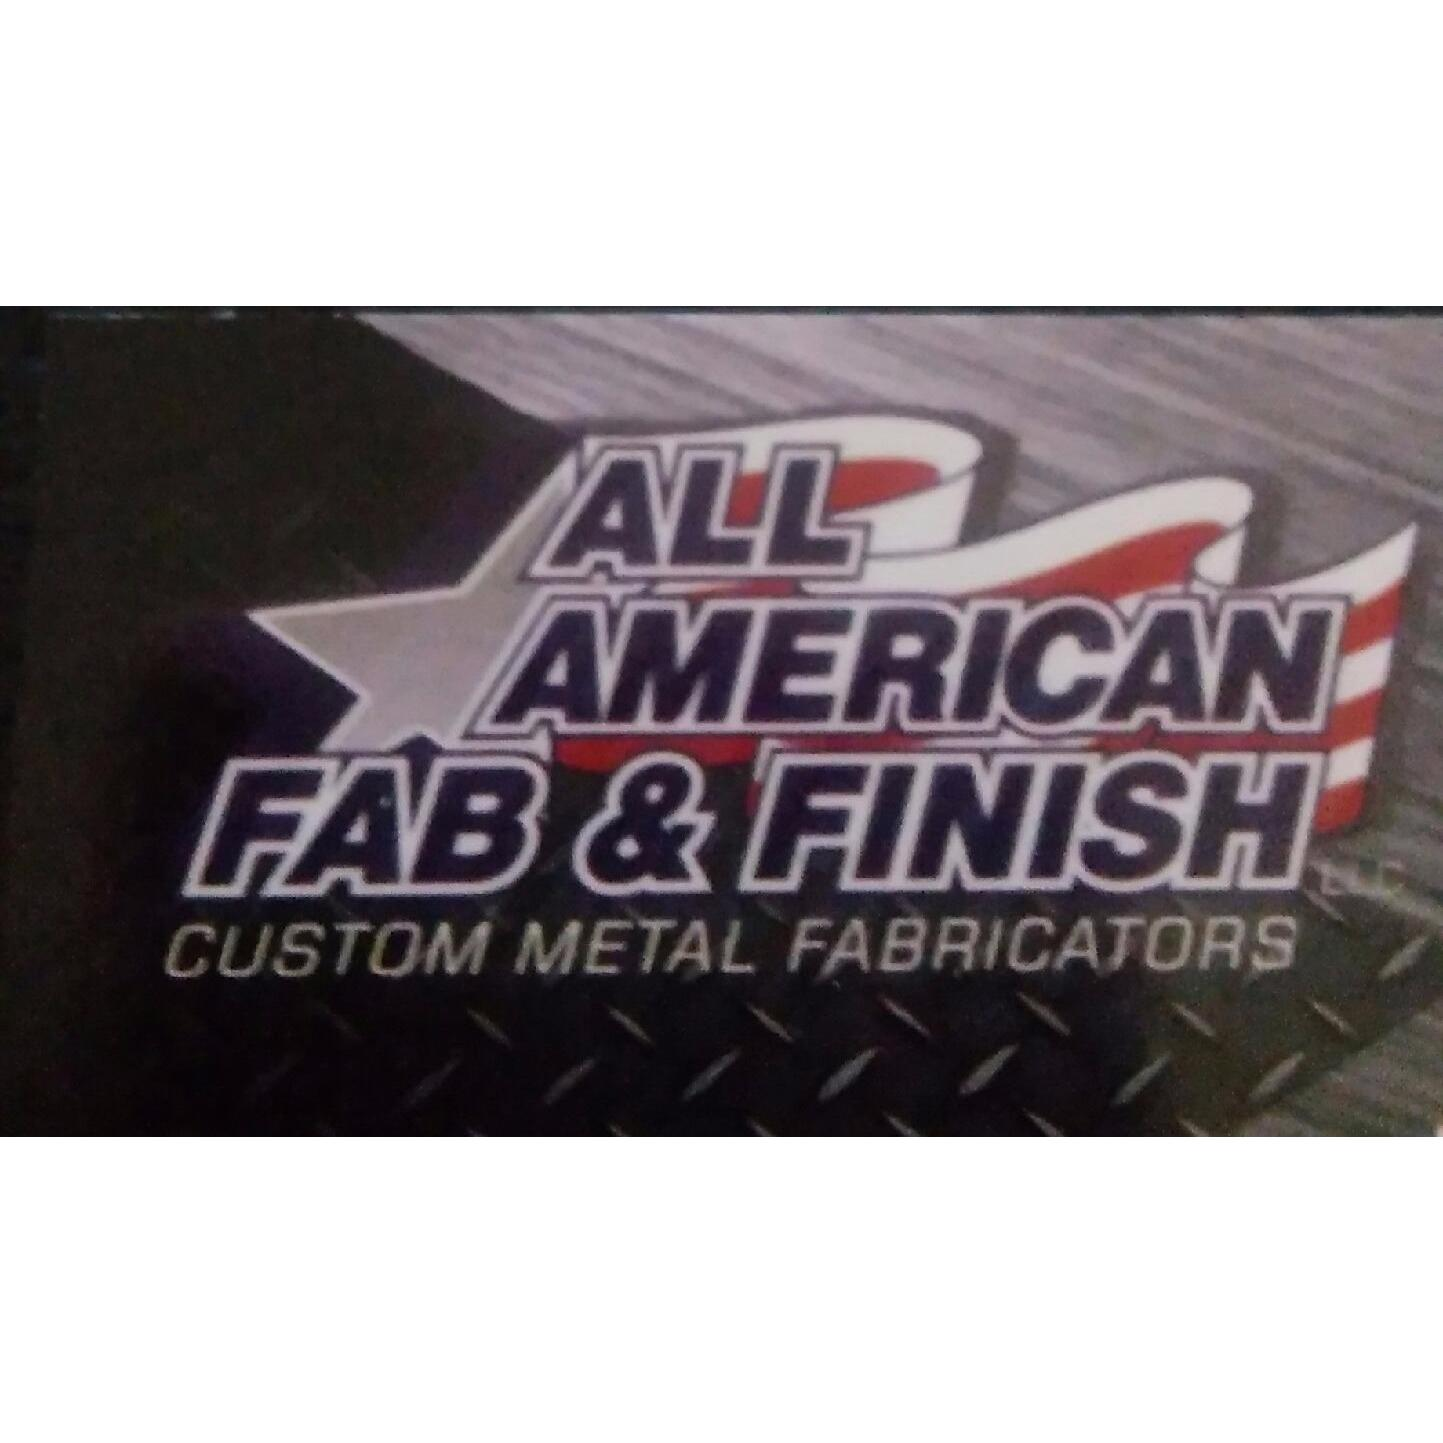 All American Finishing LLC